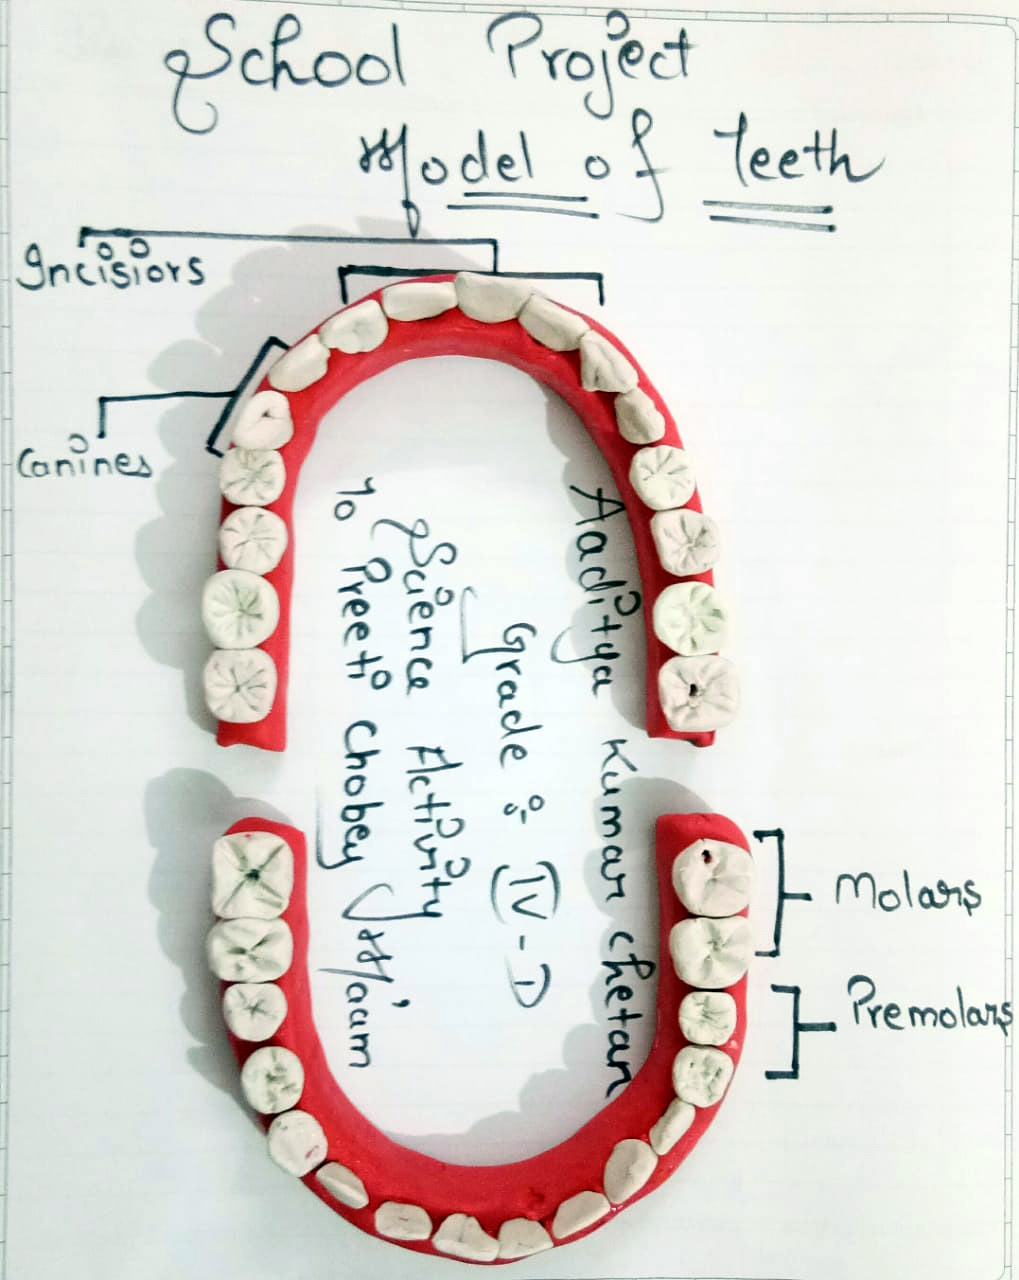 TEETH STRUCTURE